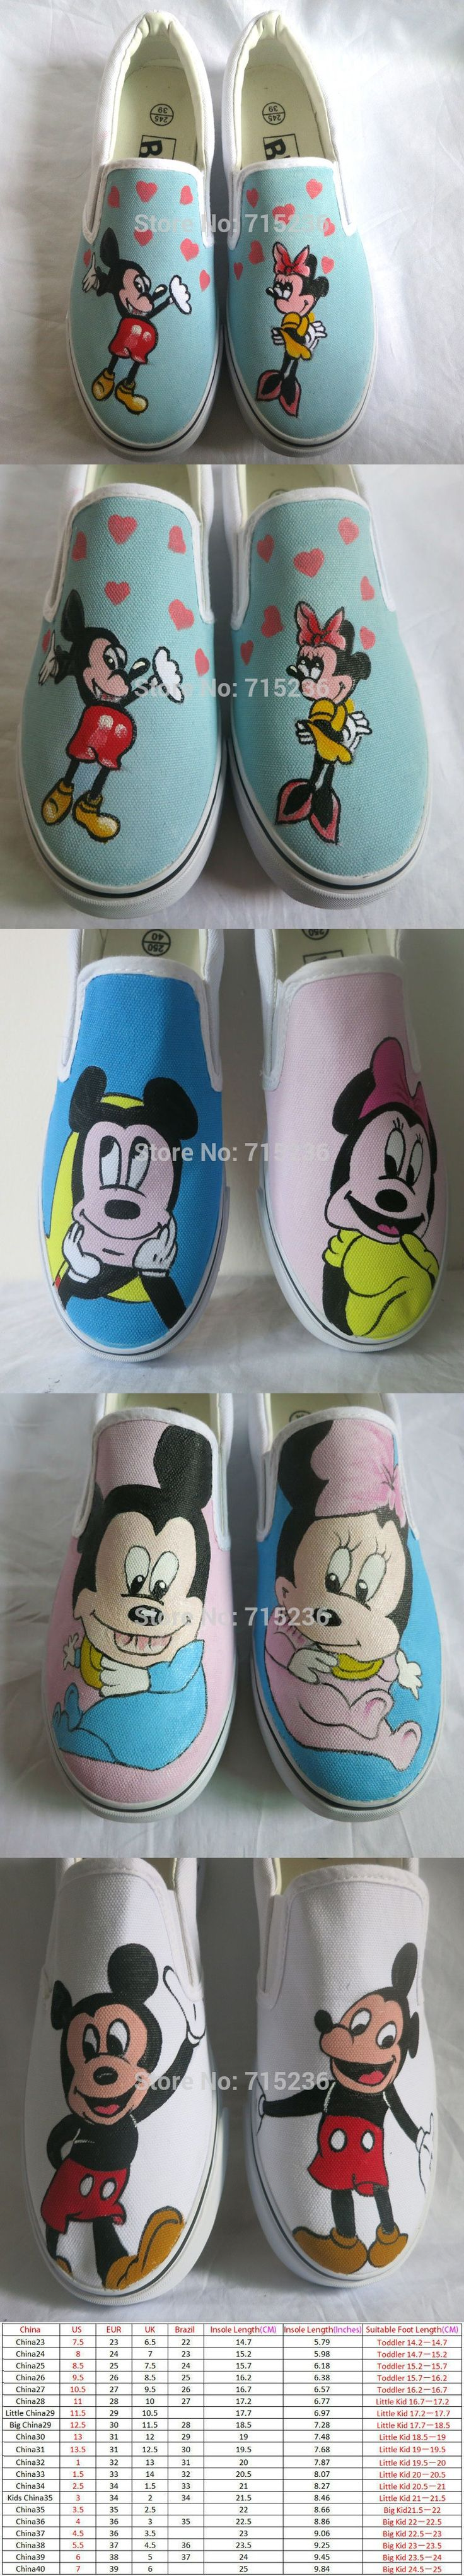 Mouse Style Kids Shoes Breathable Low Slip-On Graffiti Canvas Sneakers for Boys or Girls $59.98